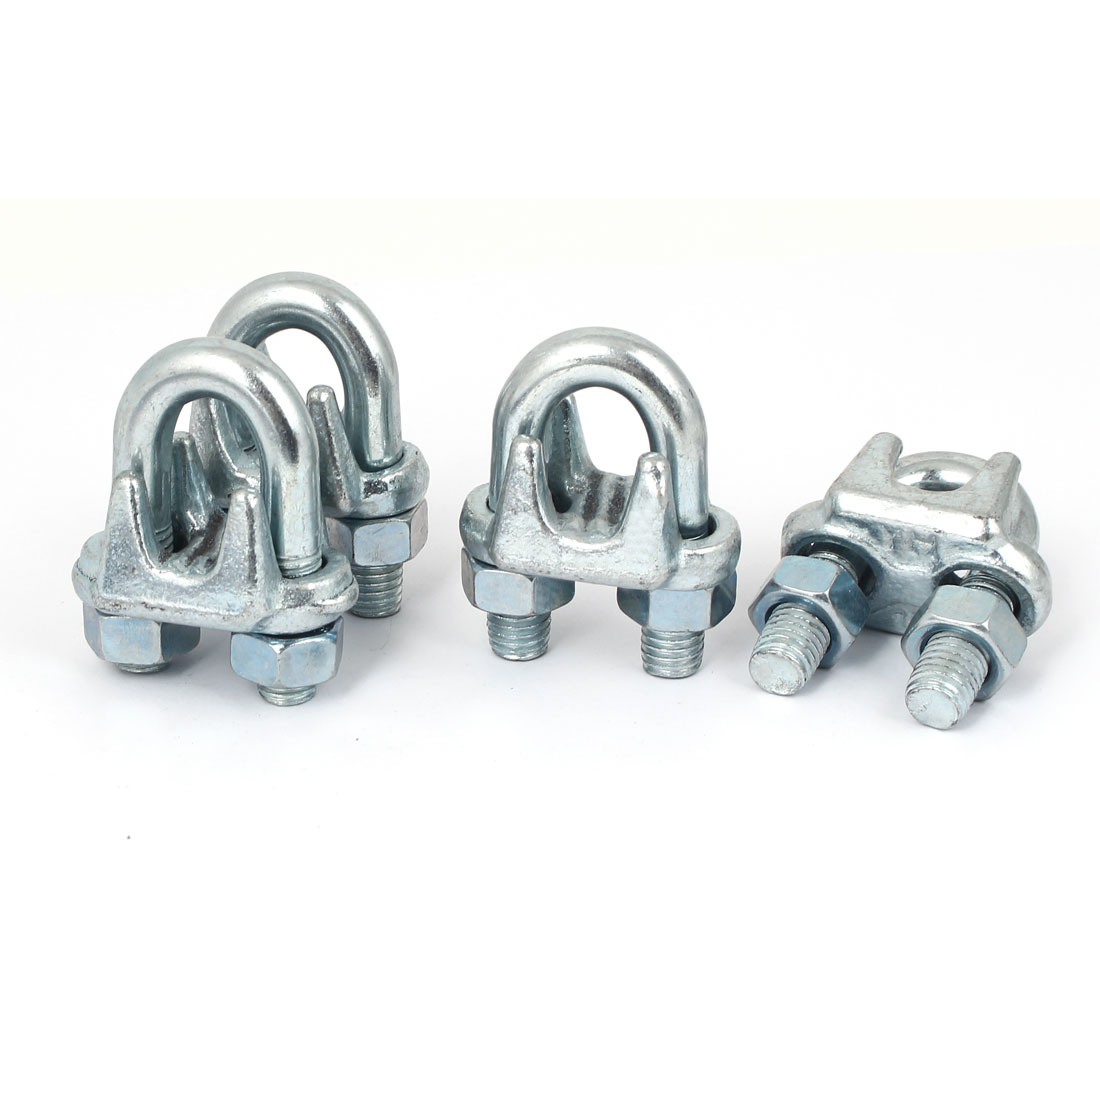 Unique Bargains 15mm Inner Width Stainless Steel Wire Rope Cable Clip Saddle U Clamps 4 Pcs